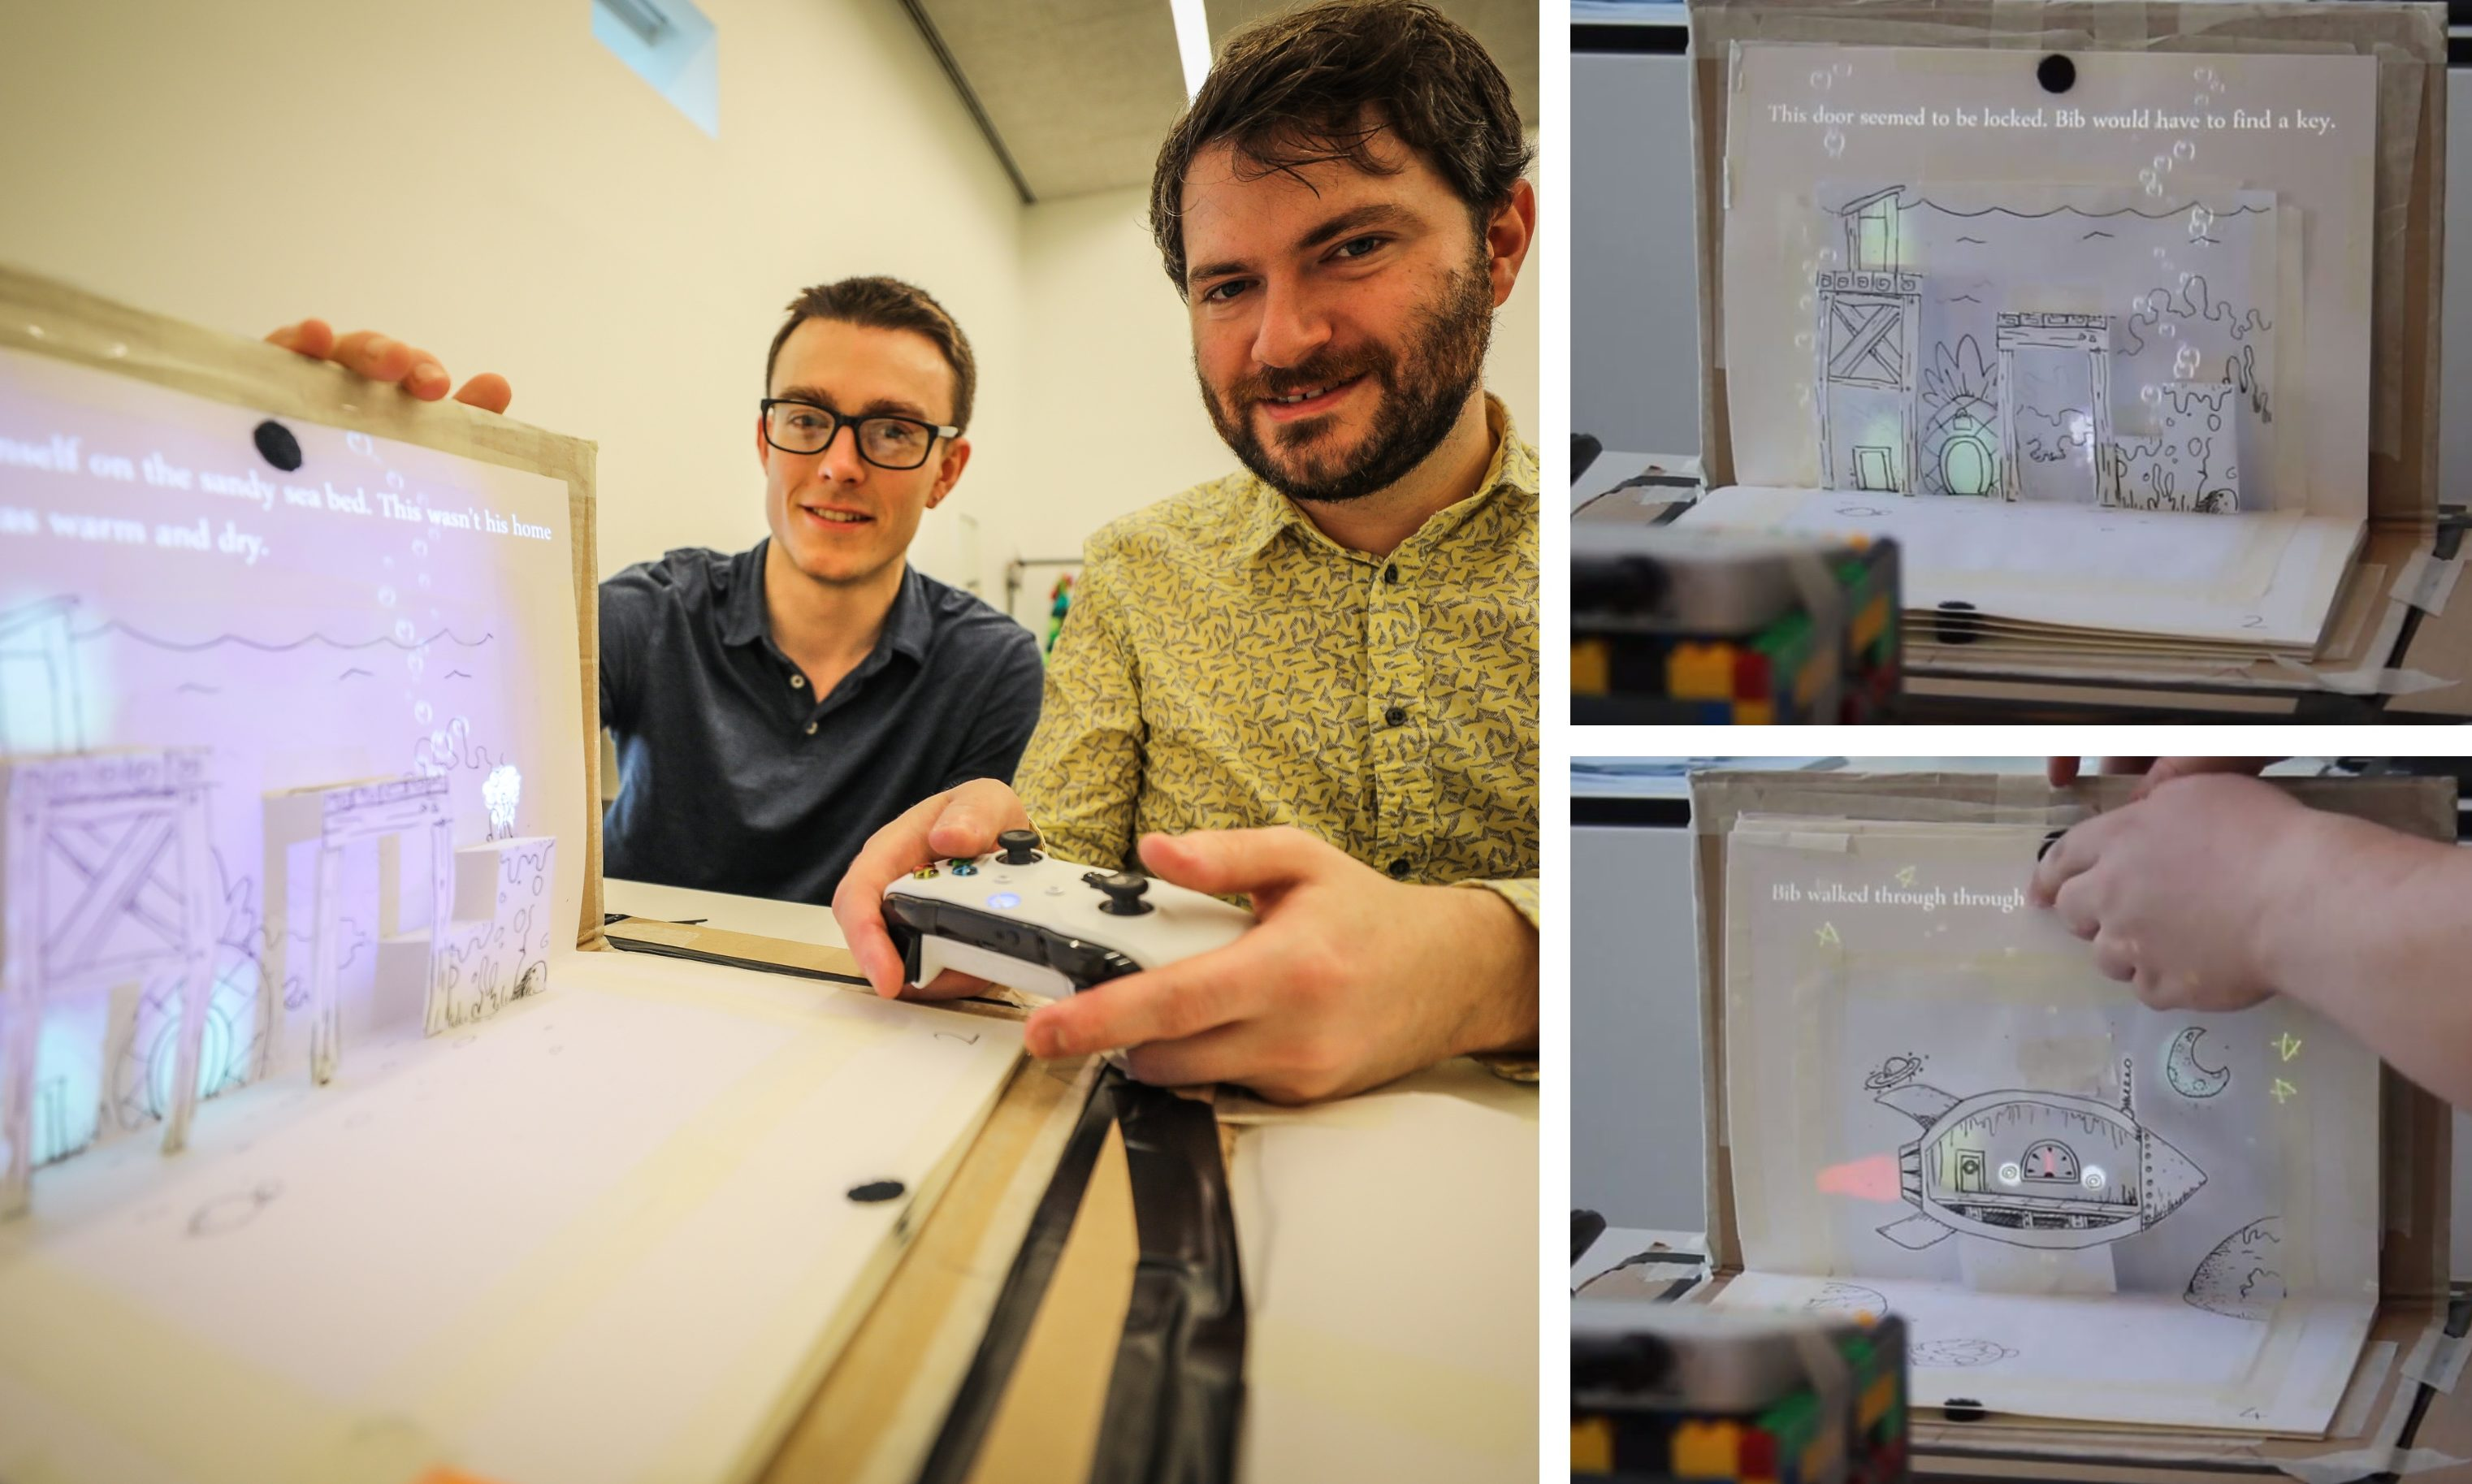 Alastair Low, artist and Matt Stark, programmer have created a unique game that combines pop-up books with platform gaming.